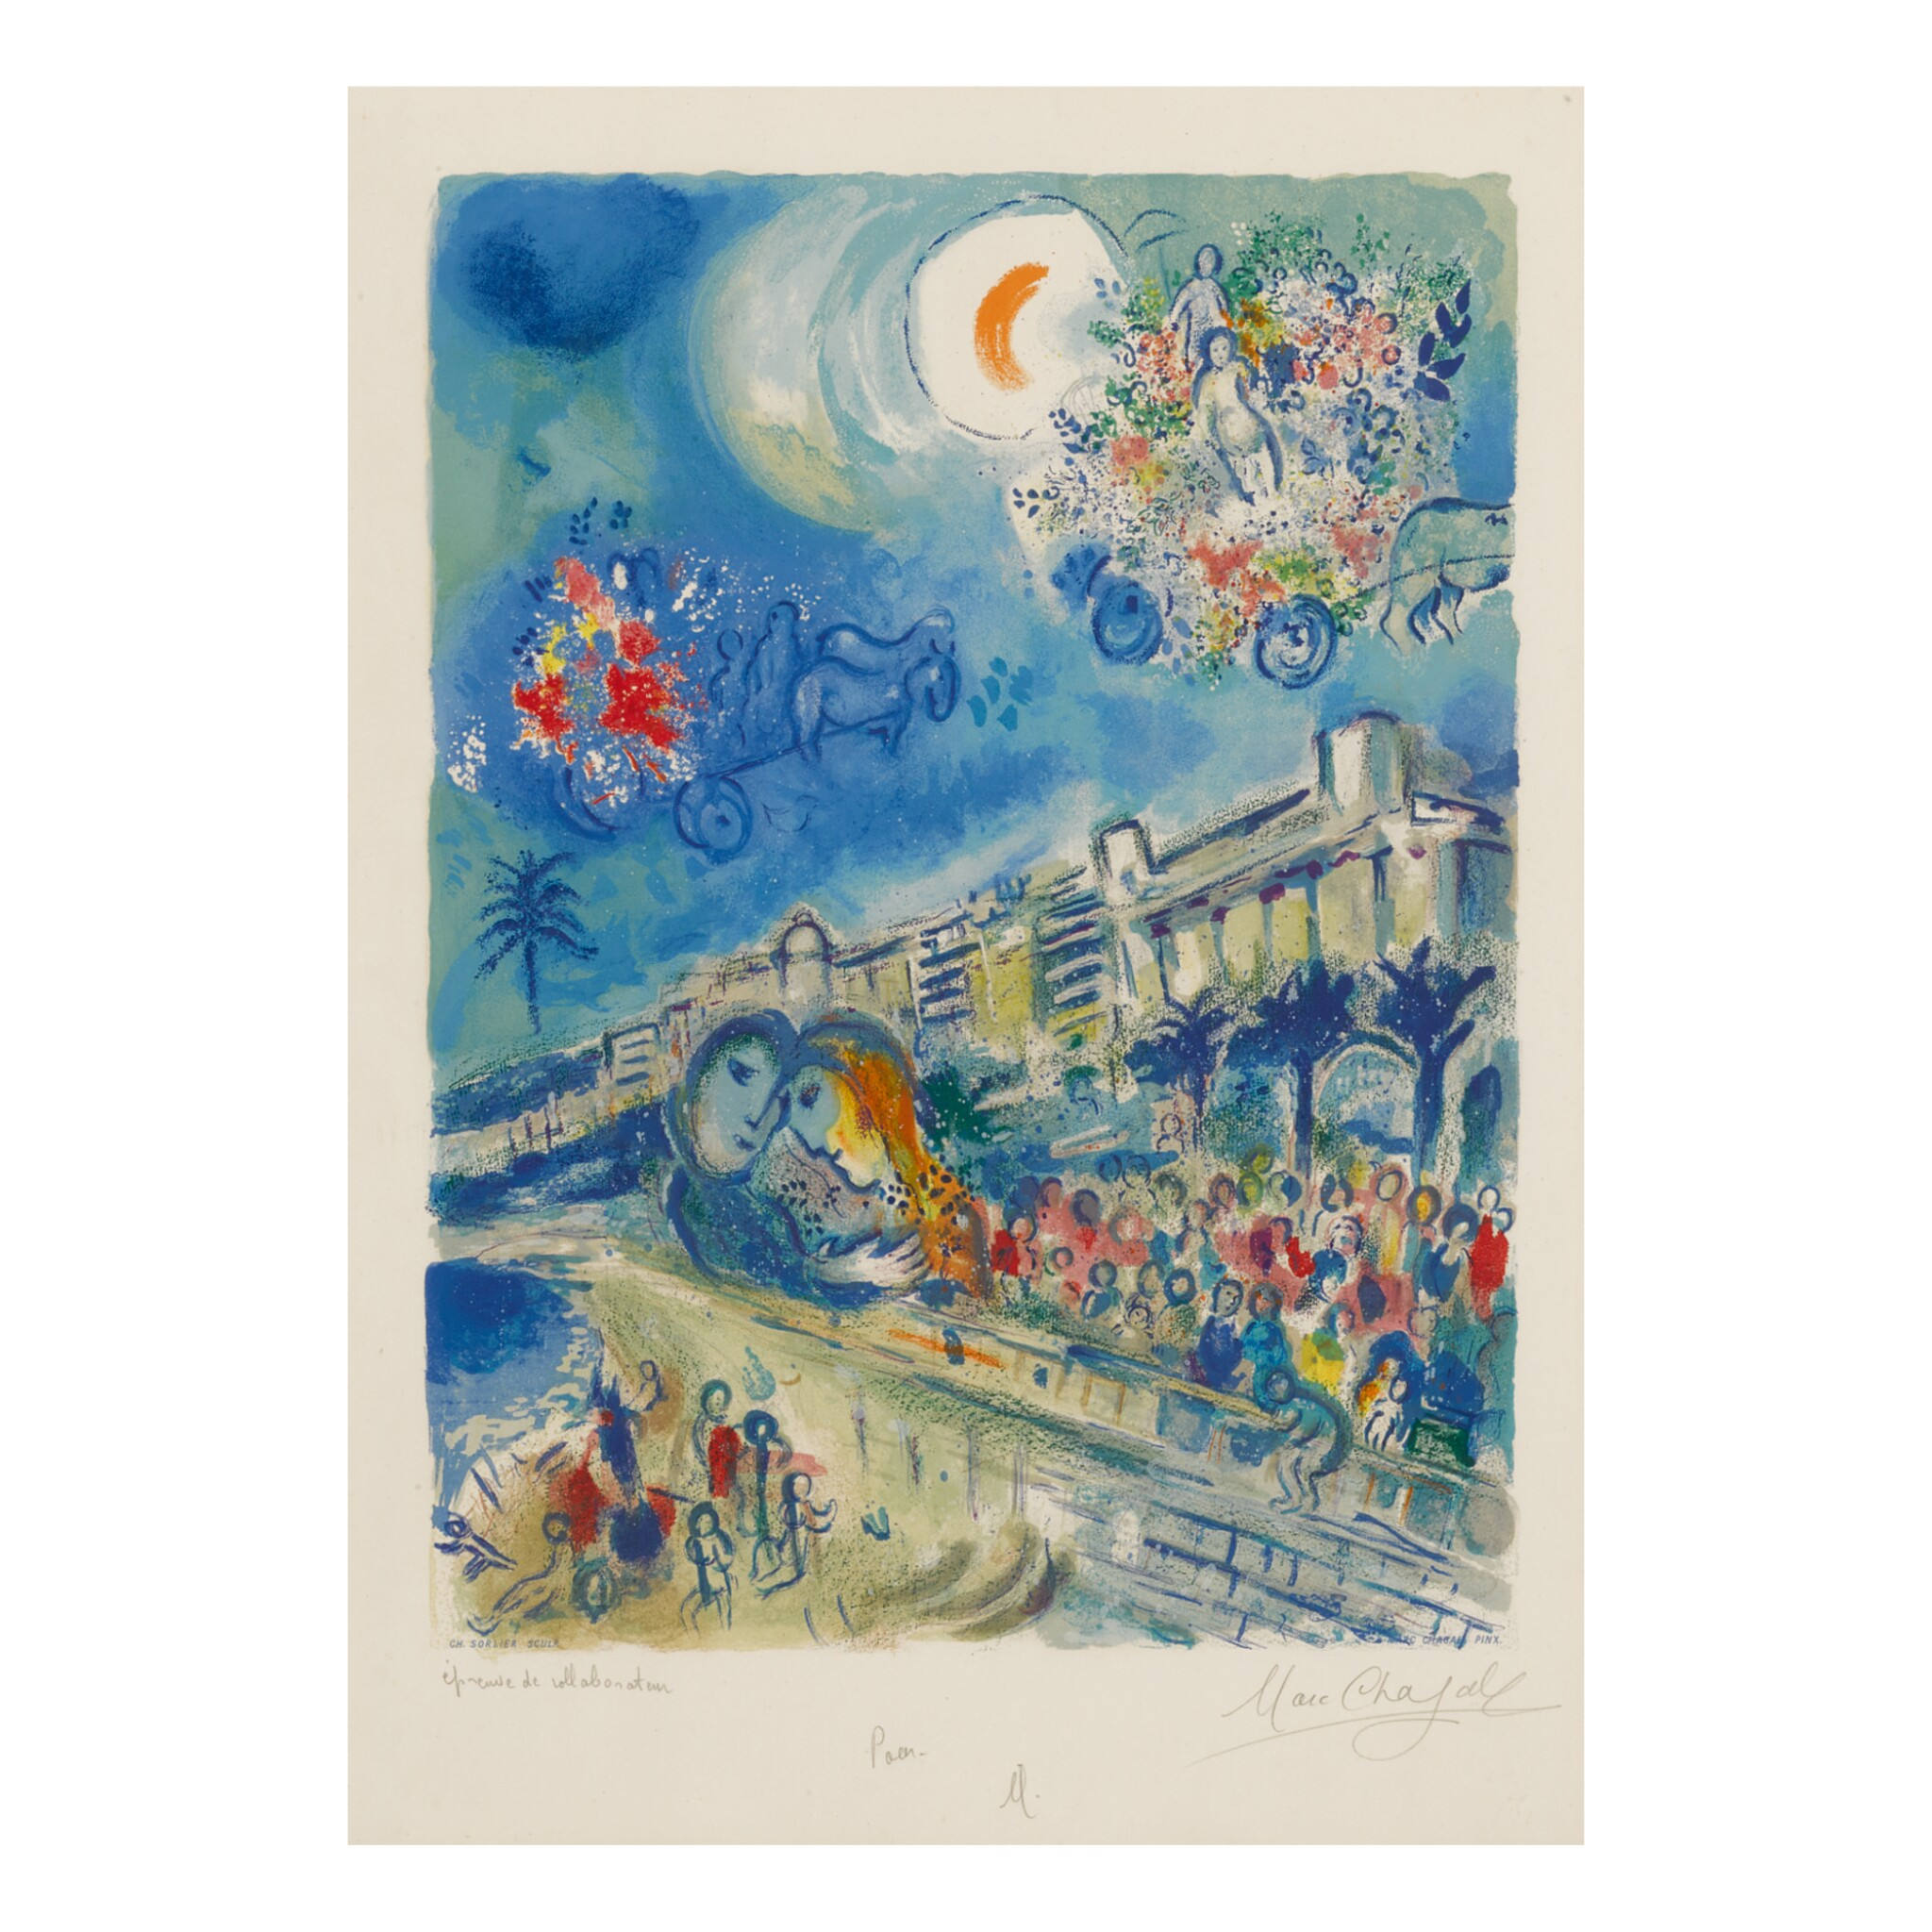 CHARLES SORLIER AFTER MARC CHAGALL | CARNAVAL OF FLOWERS (M. CS 33)